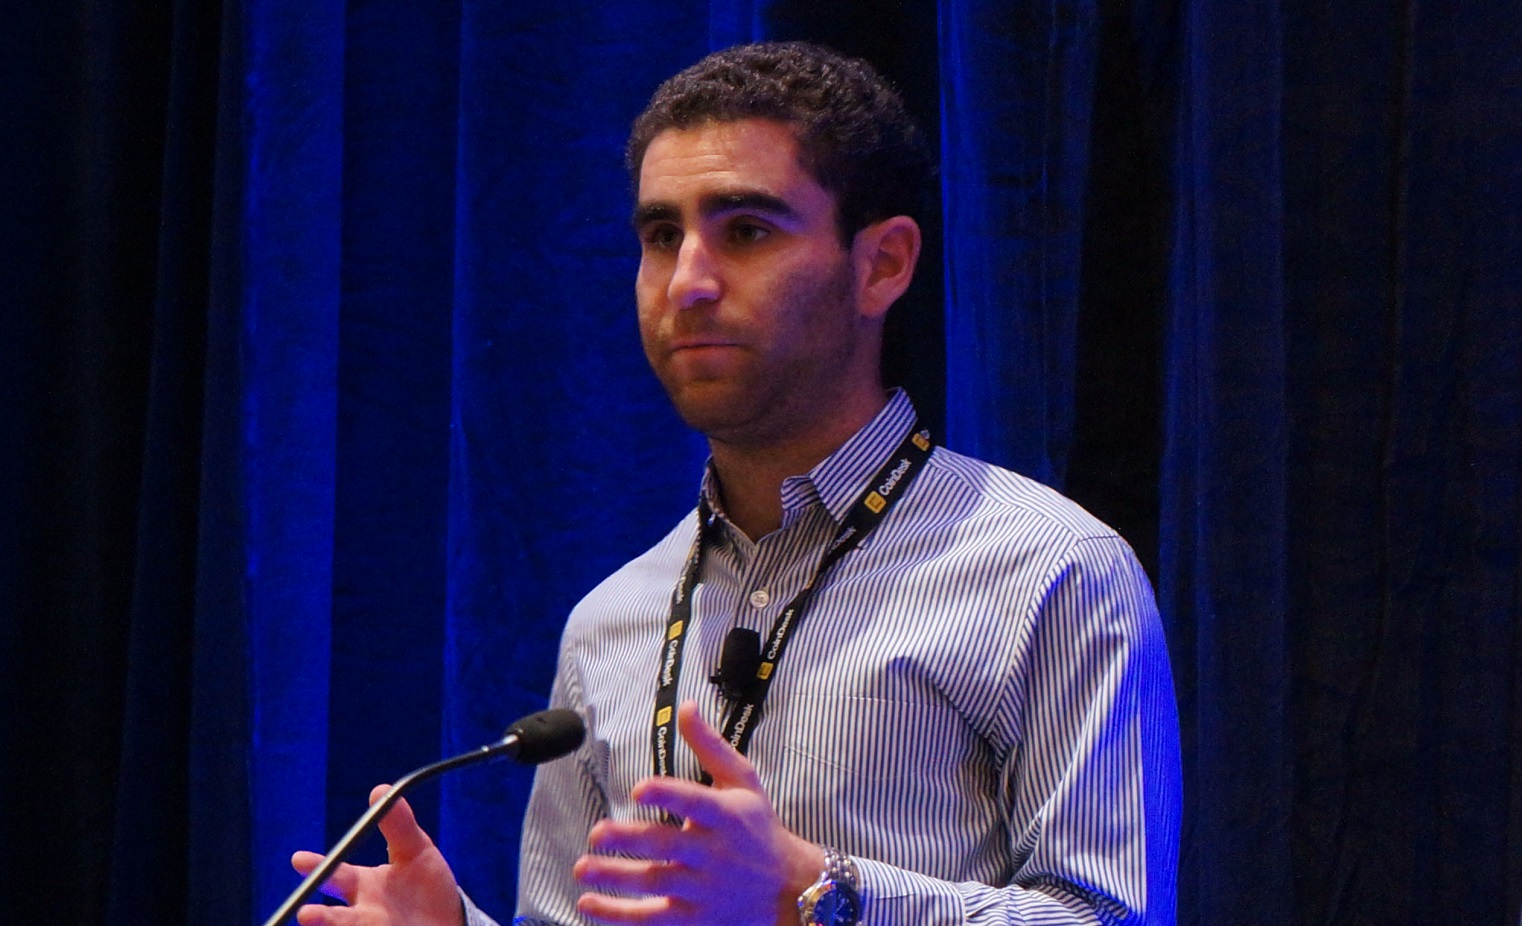 Bitcoin community reacts to Charlie Shrem's arrest